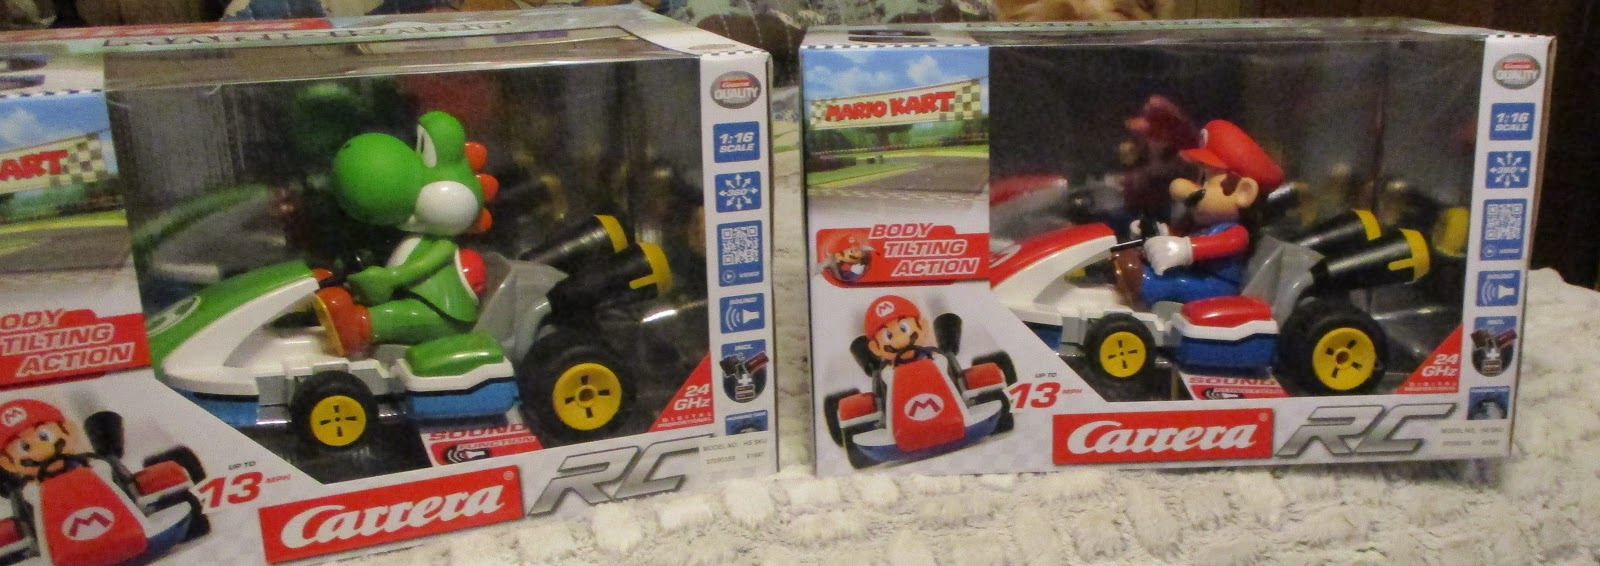 Missys Product Reviews : Hammacher Schlemmer RC Mario Kart Racers